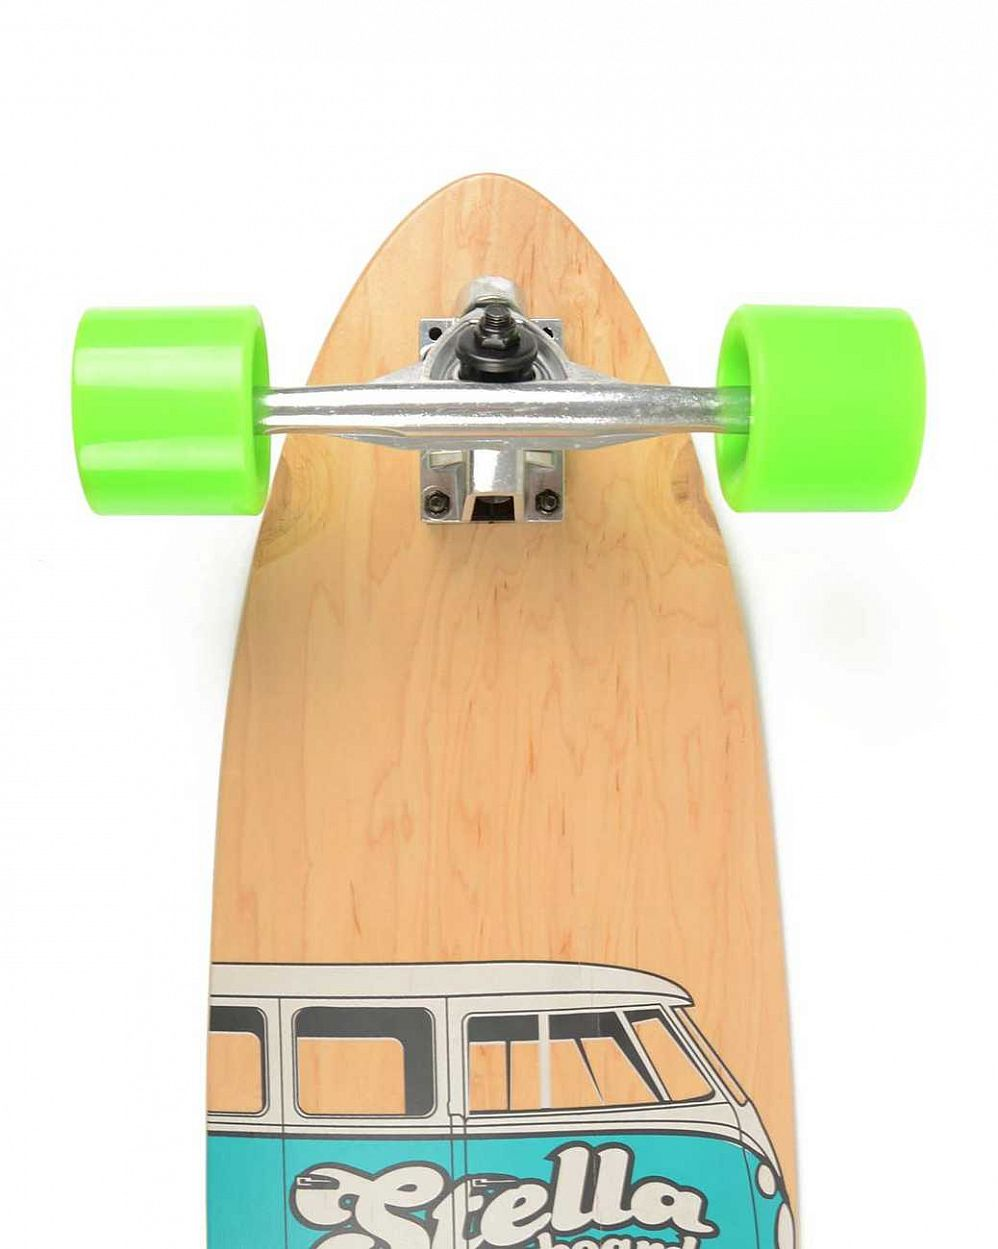 Лонгборд Stella Longboards KICKTAIL SLOW DAYZ BLUE цена в Москве